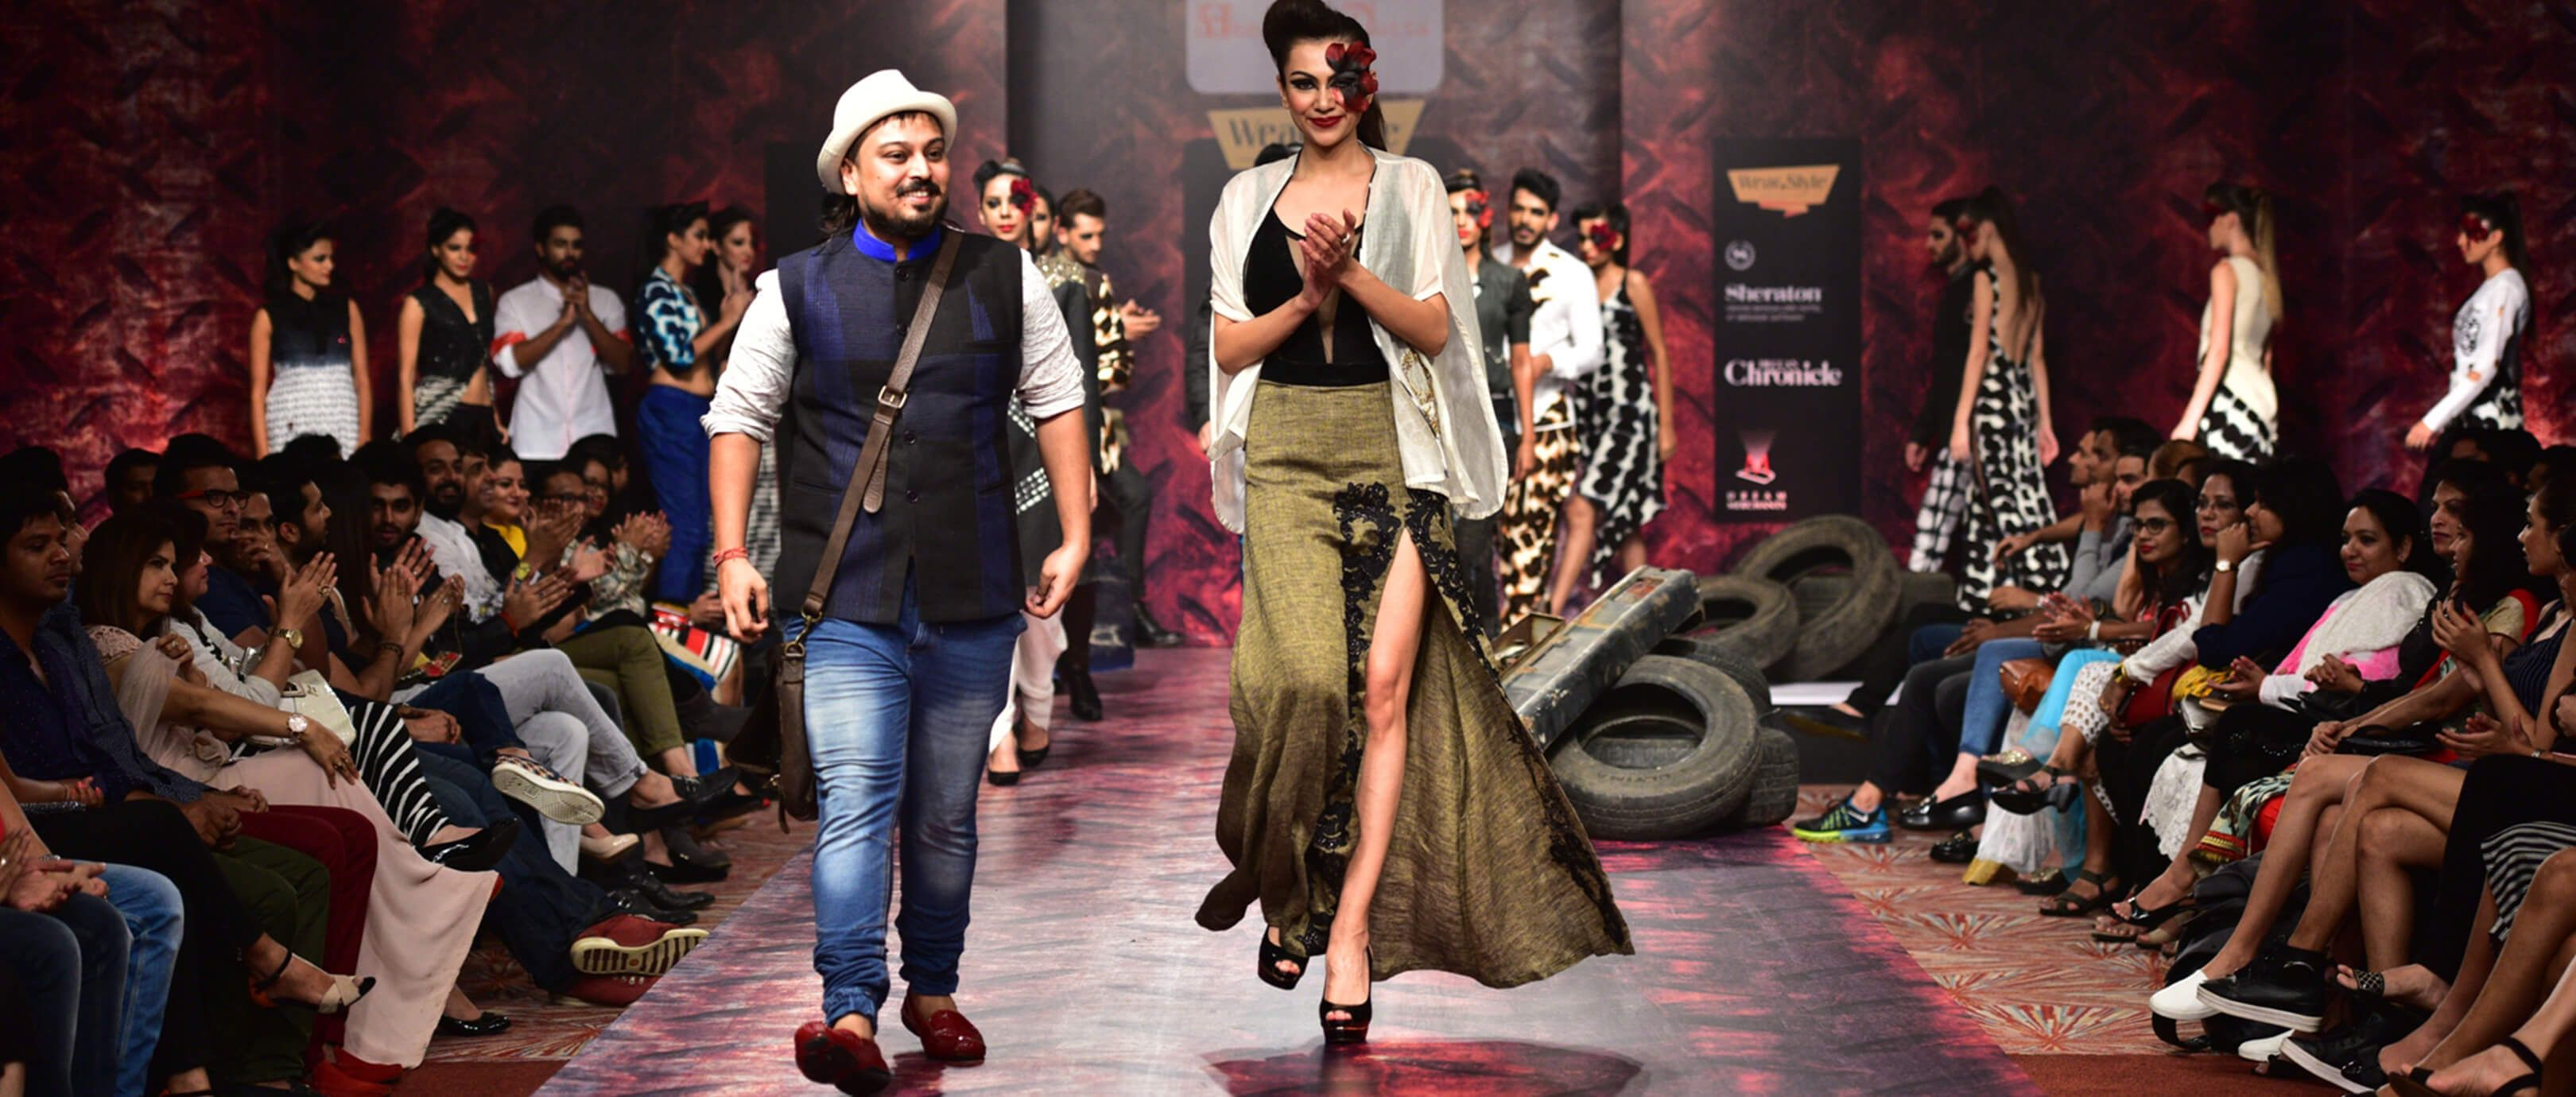 Abhishek_Dutta_Featured_Fashion_Style